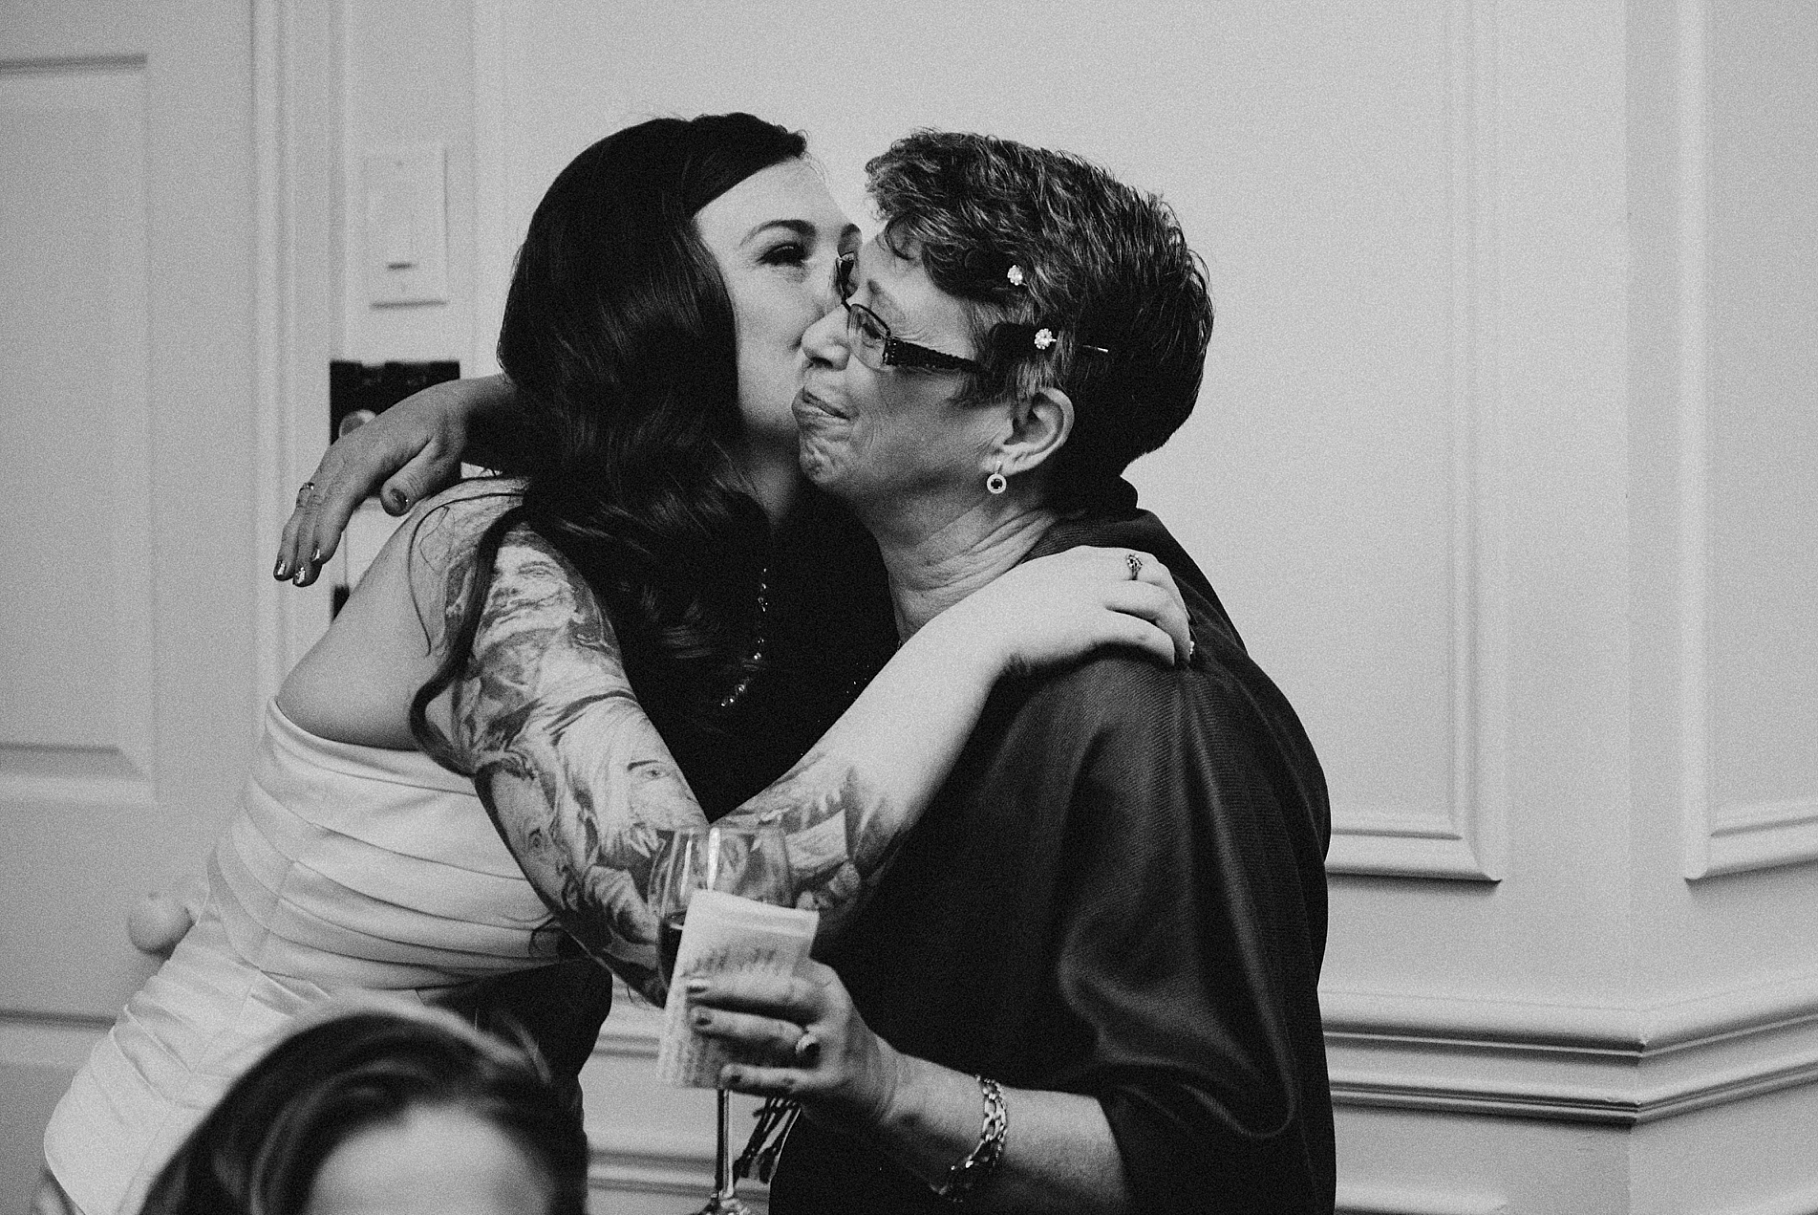 Orchard View Wedding by Mocha Tree Studios Ottawa Wedding and Engagement Photographer and Videographer Dark Moody Intimate Authentic Modern Romantic Cinematic Best Candid 31